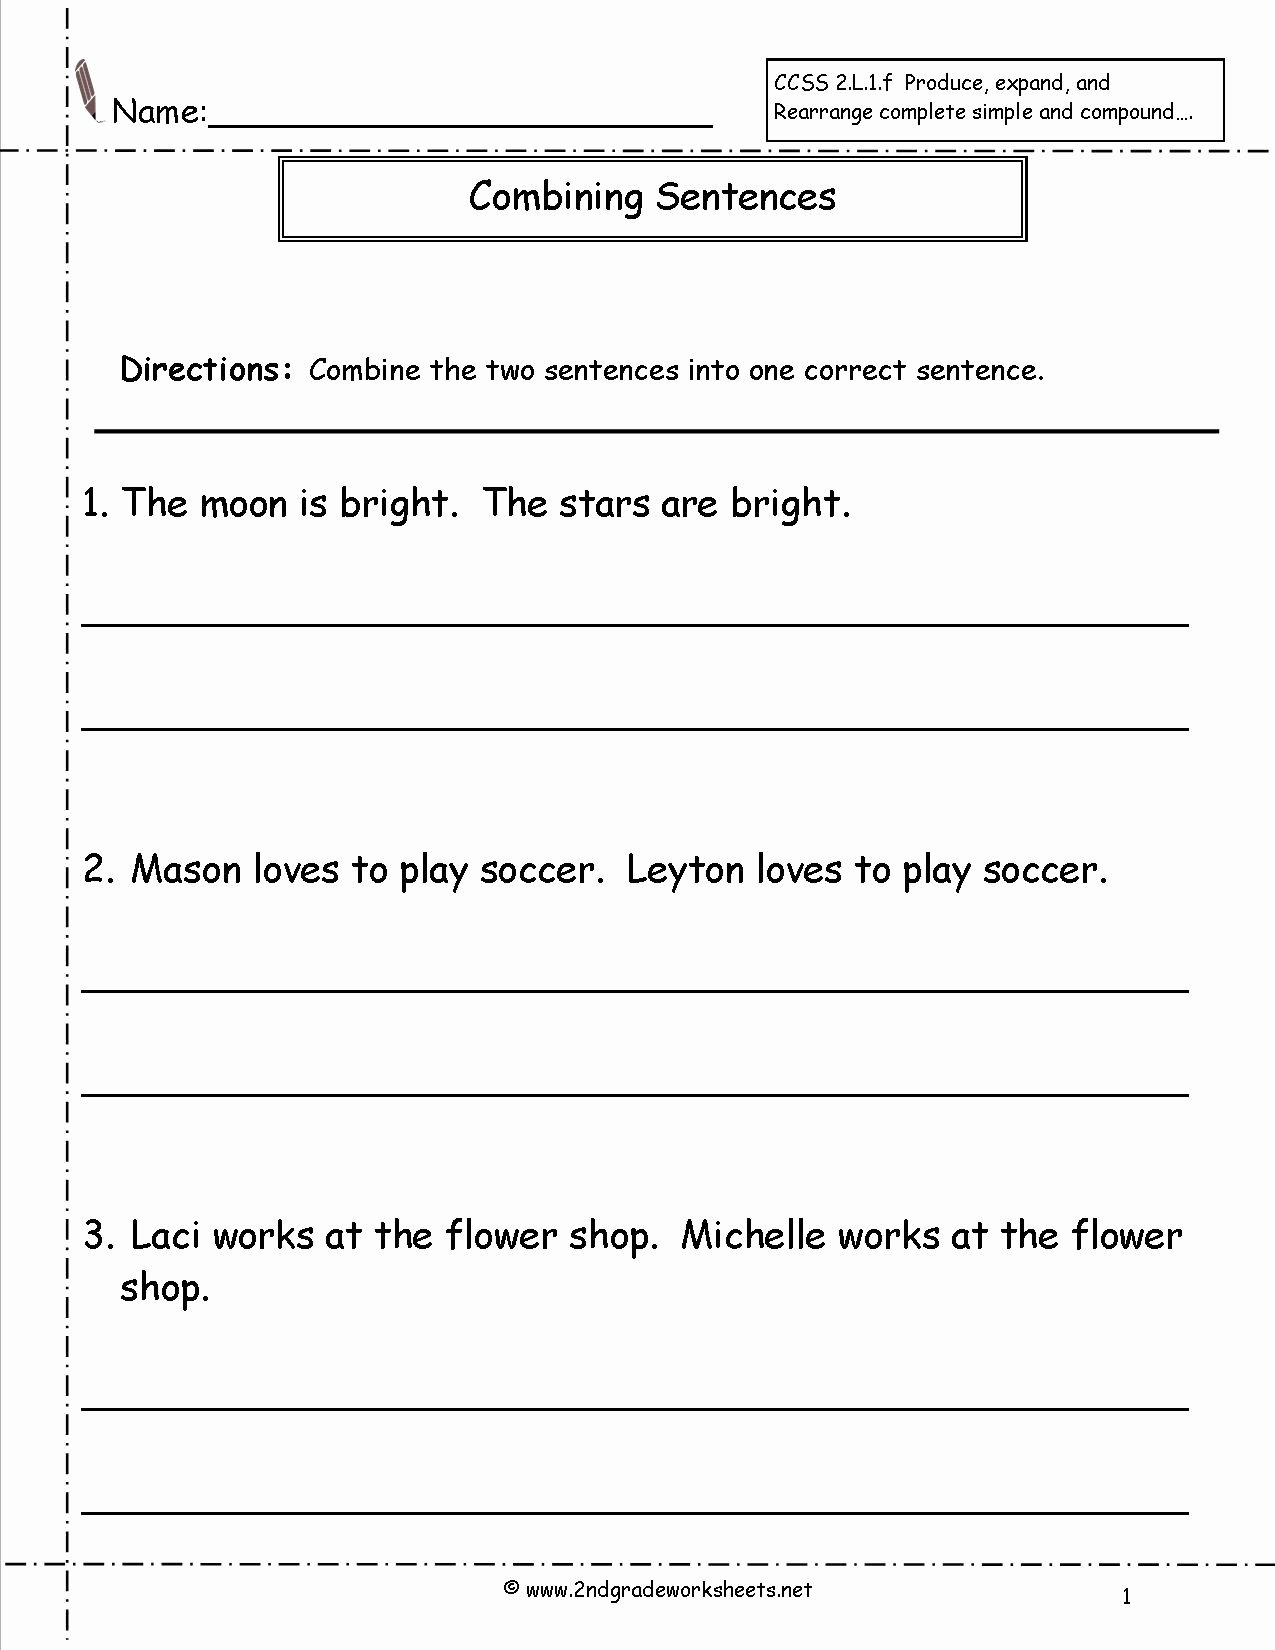 Complete Sentences Worksheets 2nd Grade top Simple Pound Sentences Lessons Tes Teach Sentence